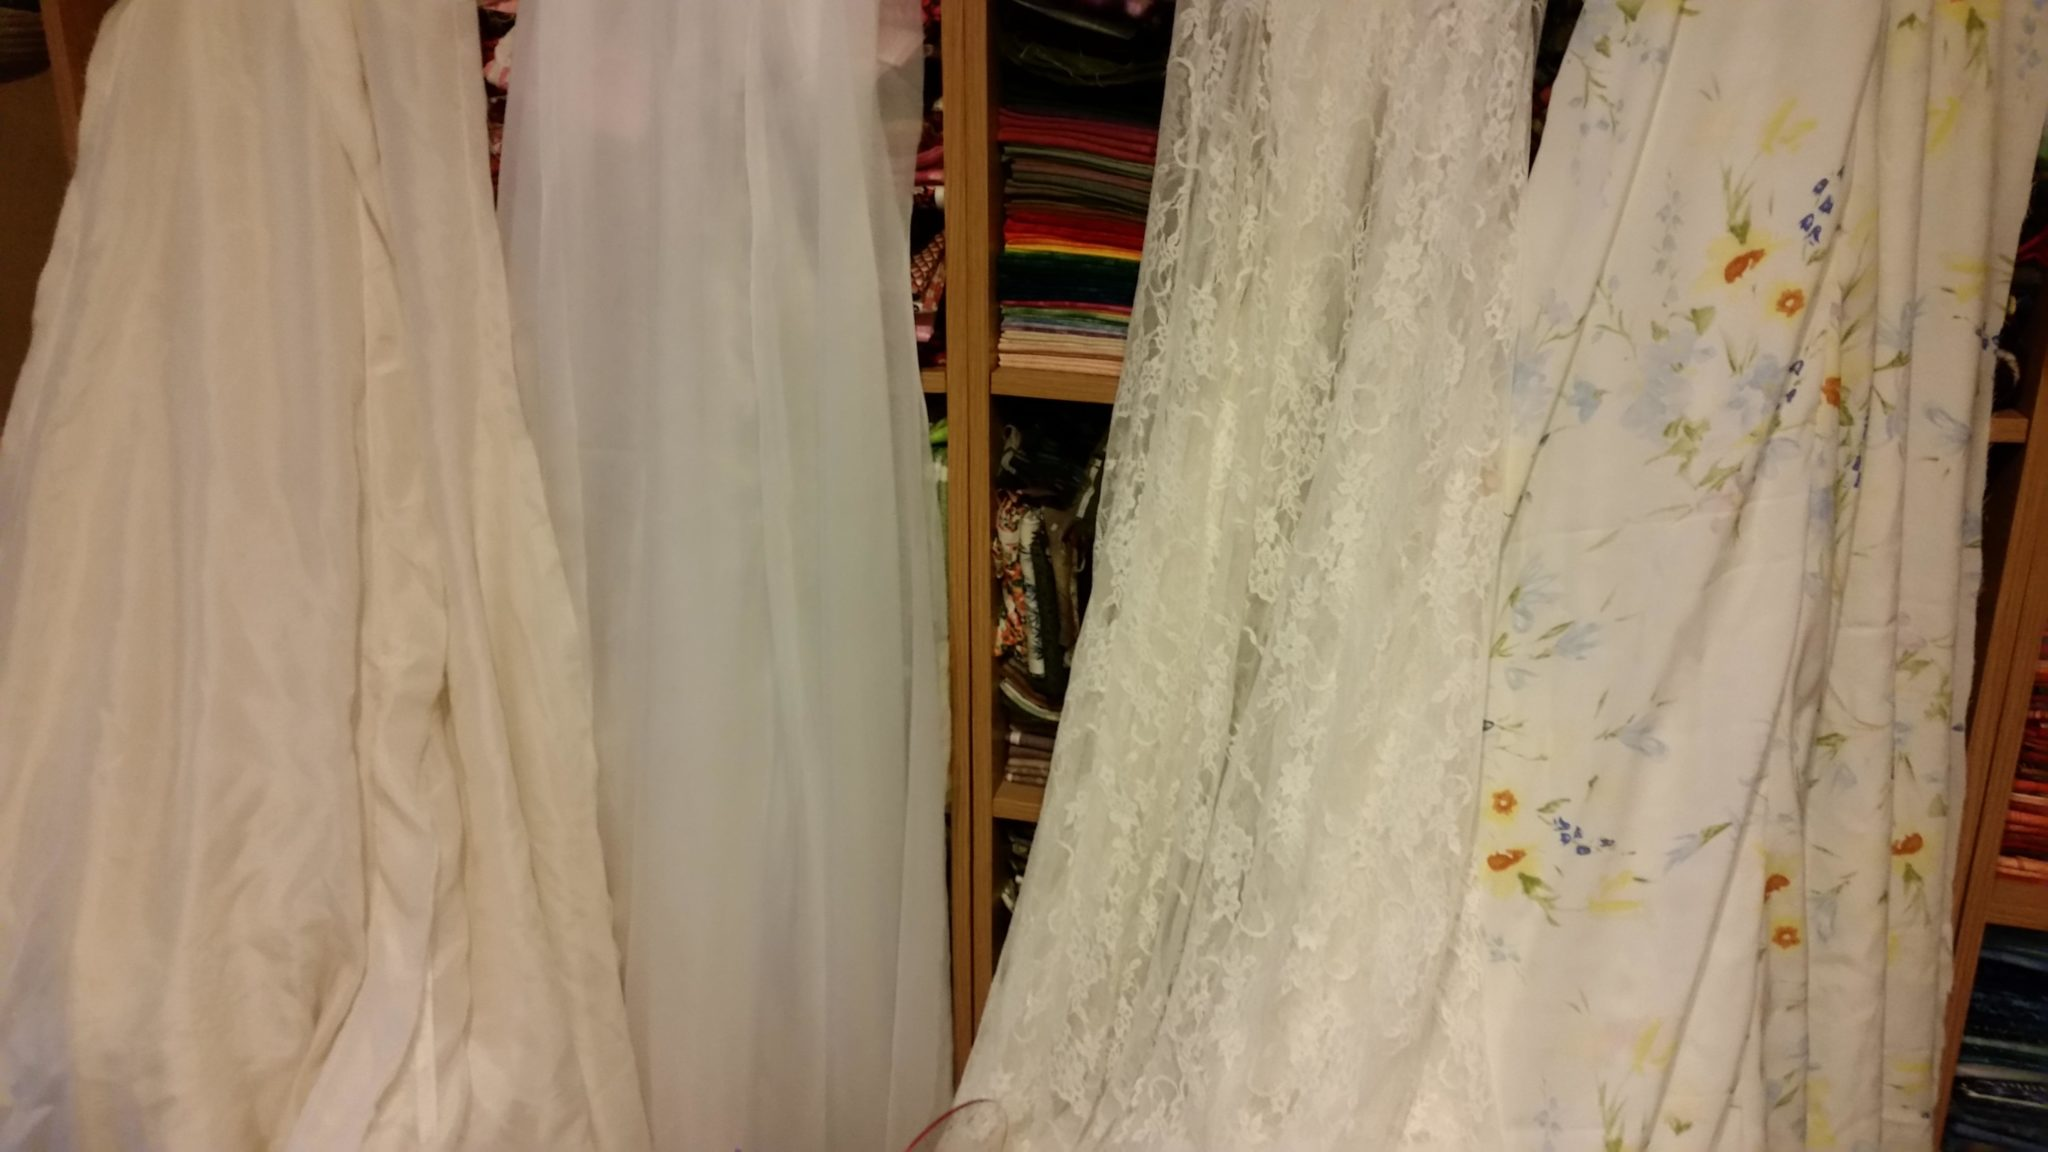 4-Layer Wedding Gown the 4 skirt layers hanging so the bias could find its natural resting place